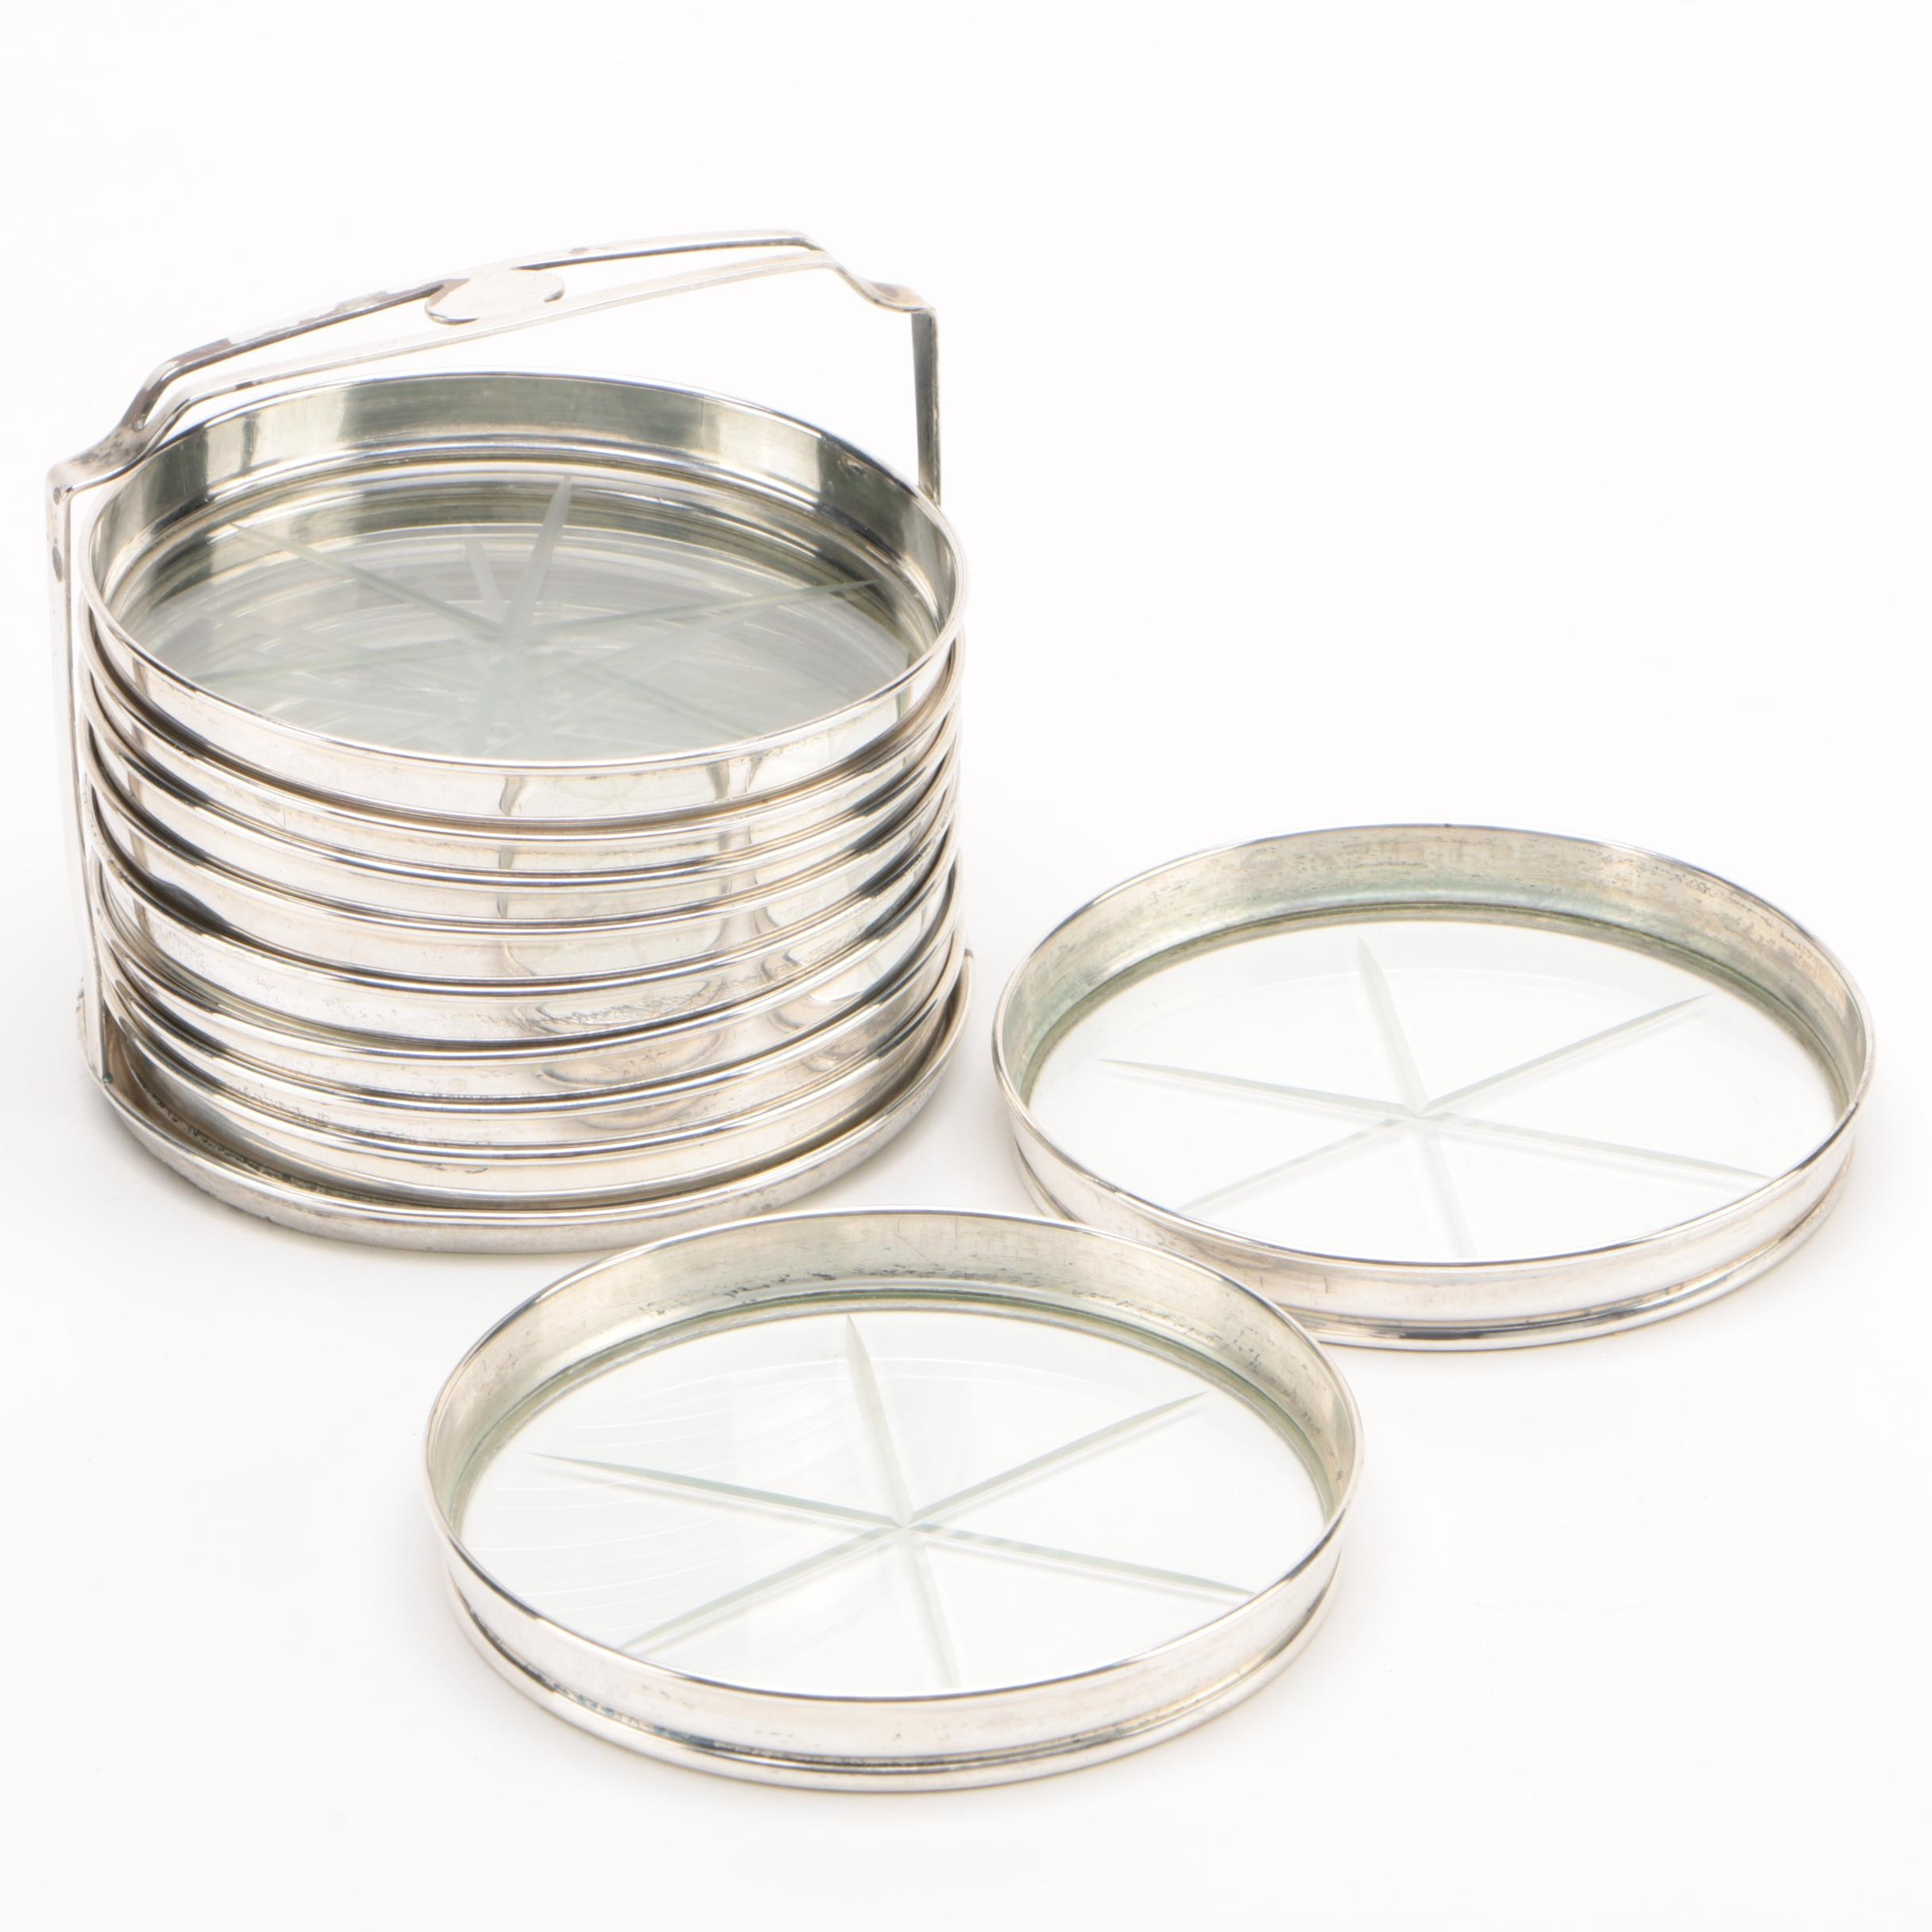 Webster Sterling Silver and Etched Glass Coasters with Caddy, Mid-Century